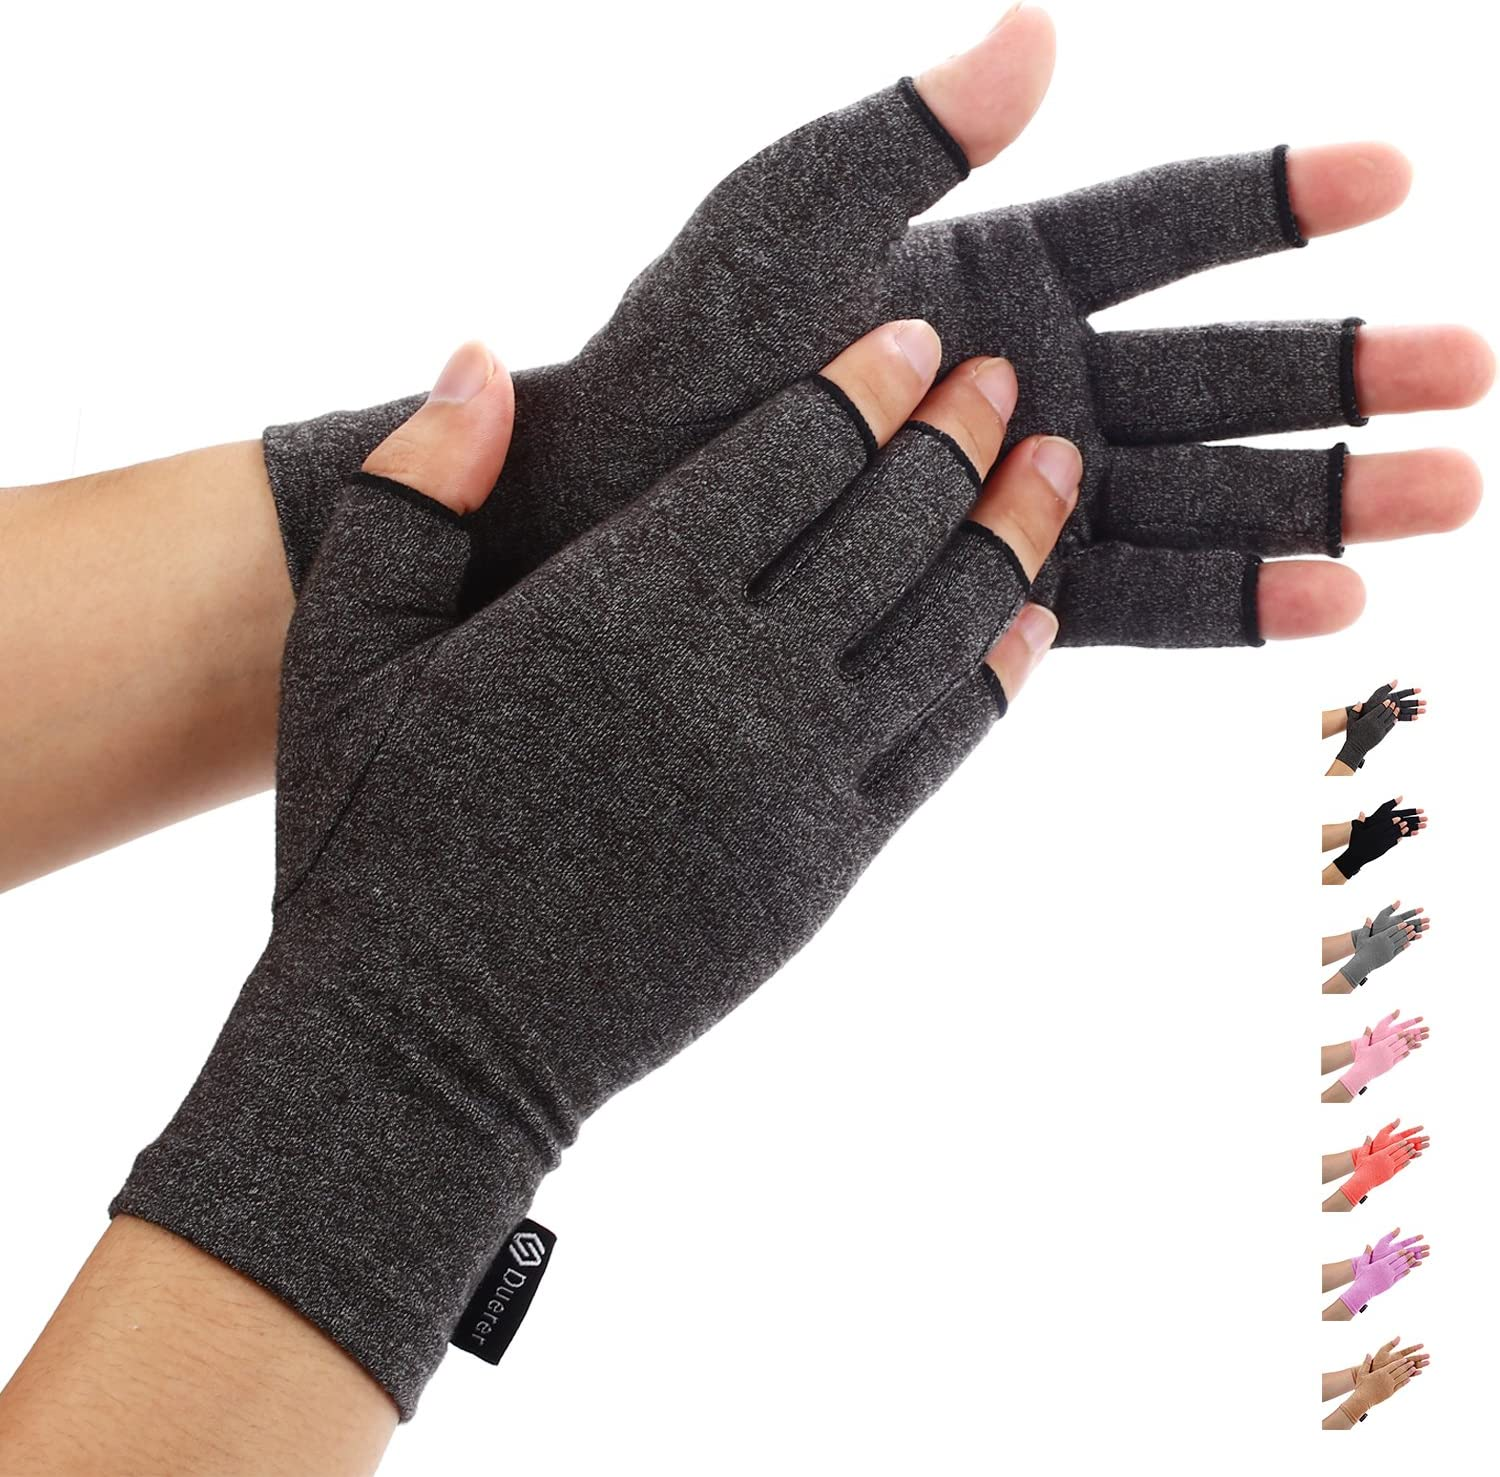 Duerer Arthritis Gloves Women Men for RSI, Carpal Tunnel, Rheumatiod, Tendonitis, Fingerless Hand Thumb Compression Gloves Small Medium Large XL for Pain Relief (Medium, Black)